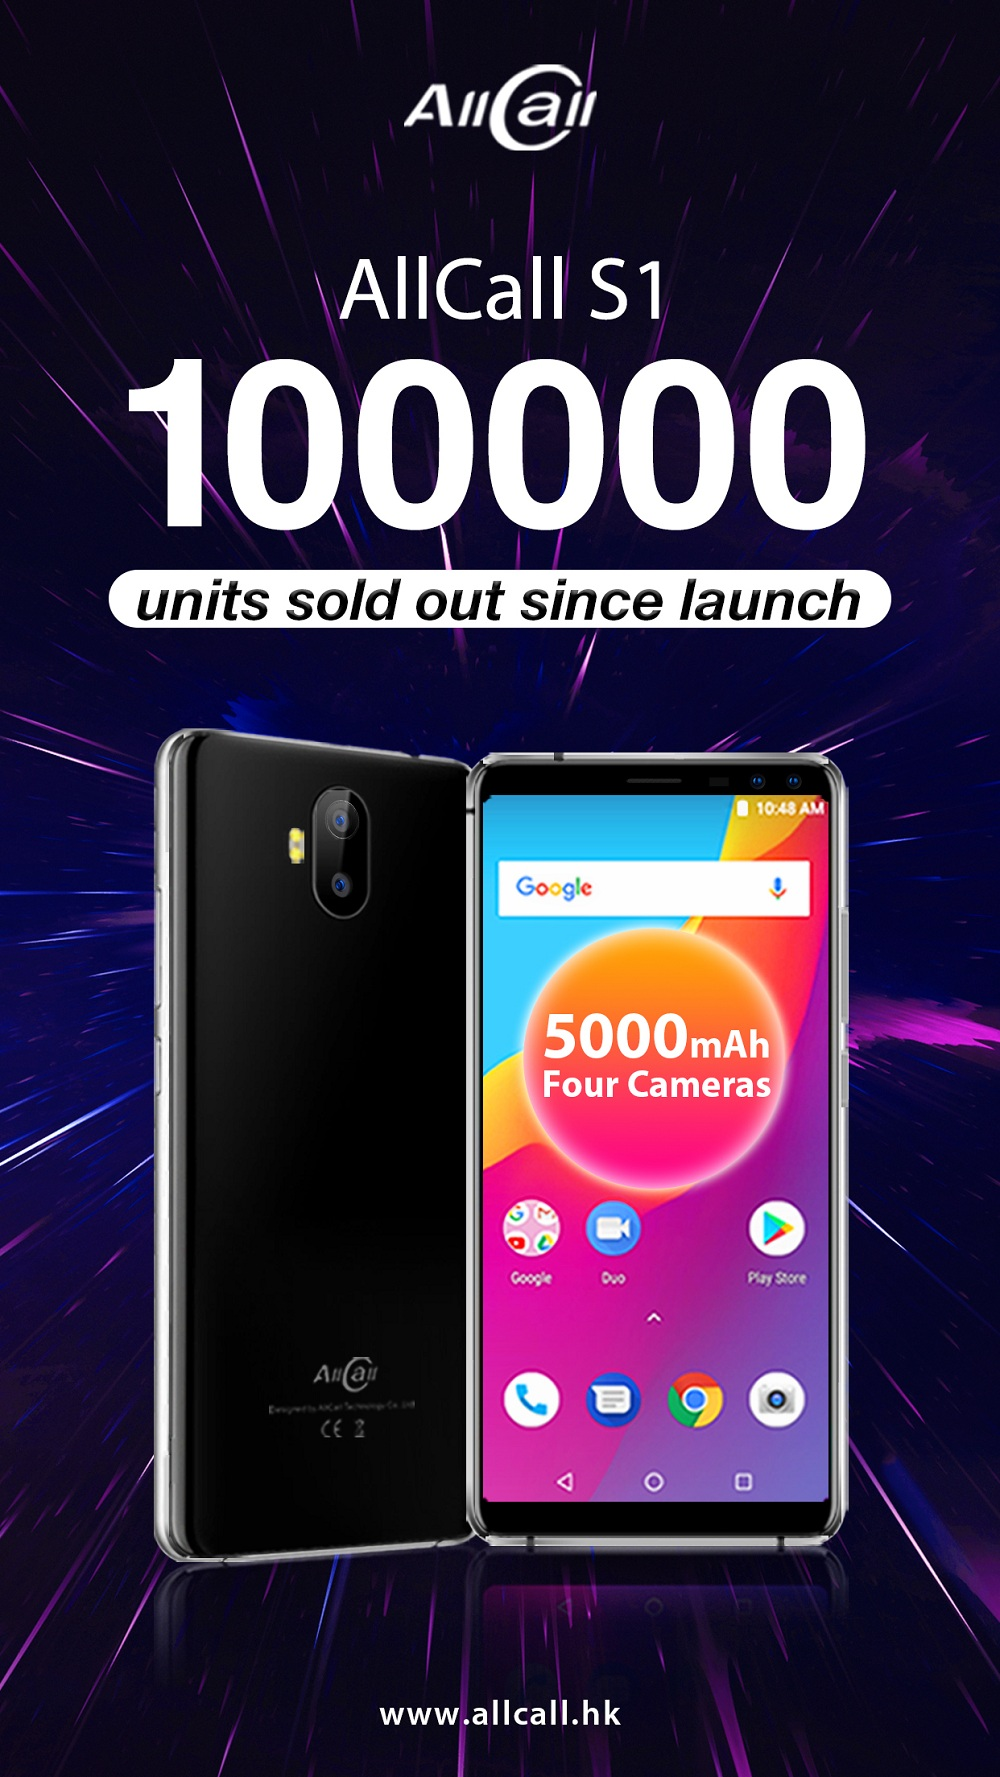 Congratulations! AllCall S1 smartphone has been sold out 100000 units since official launch!